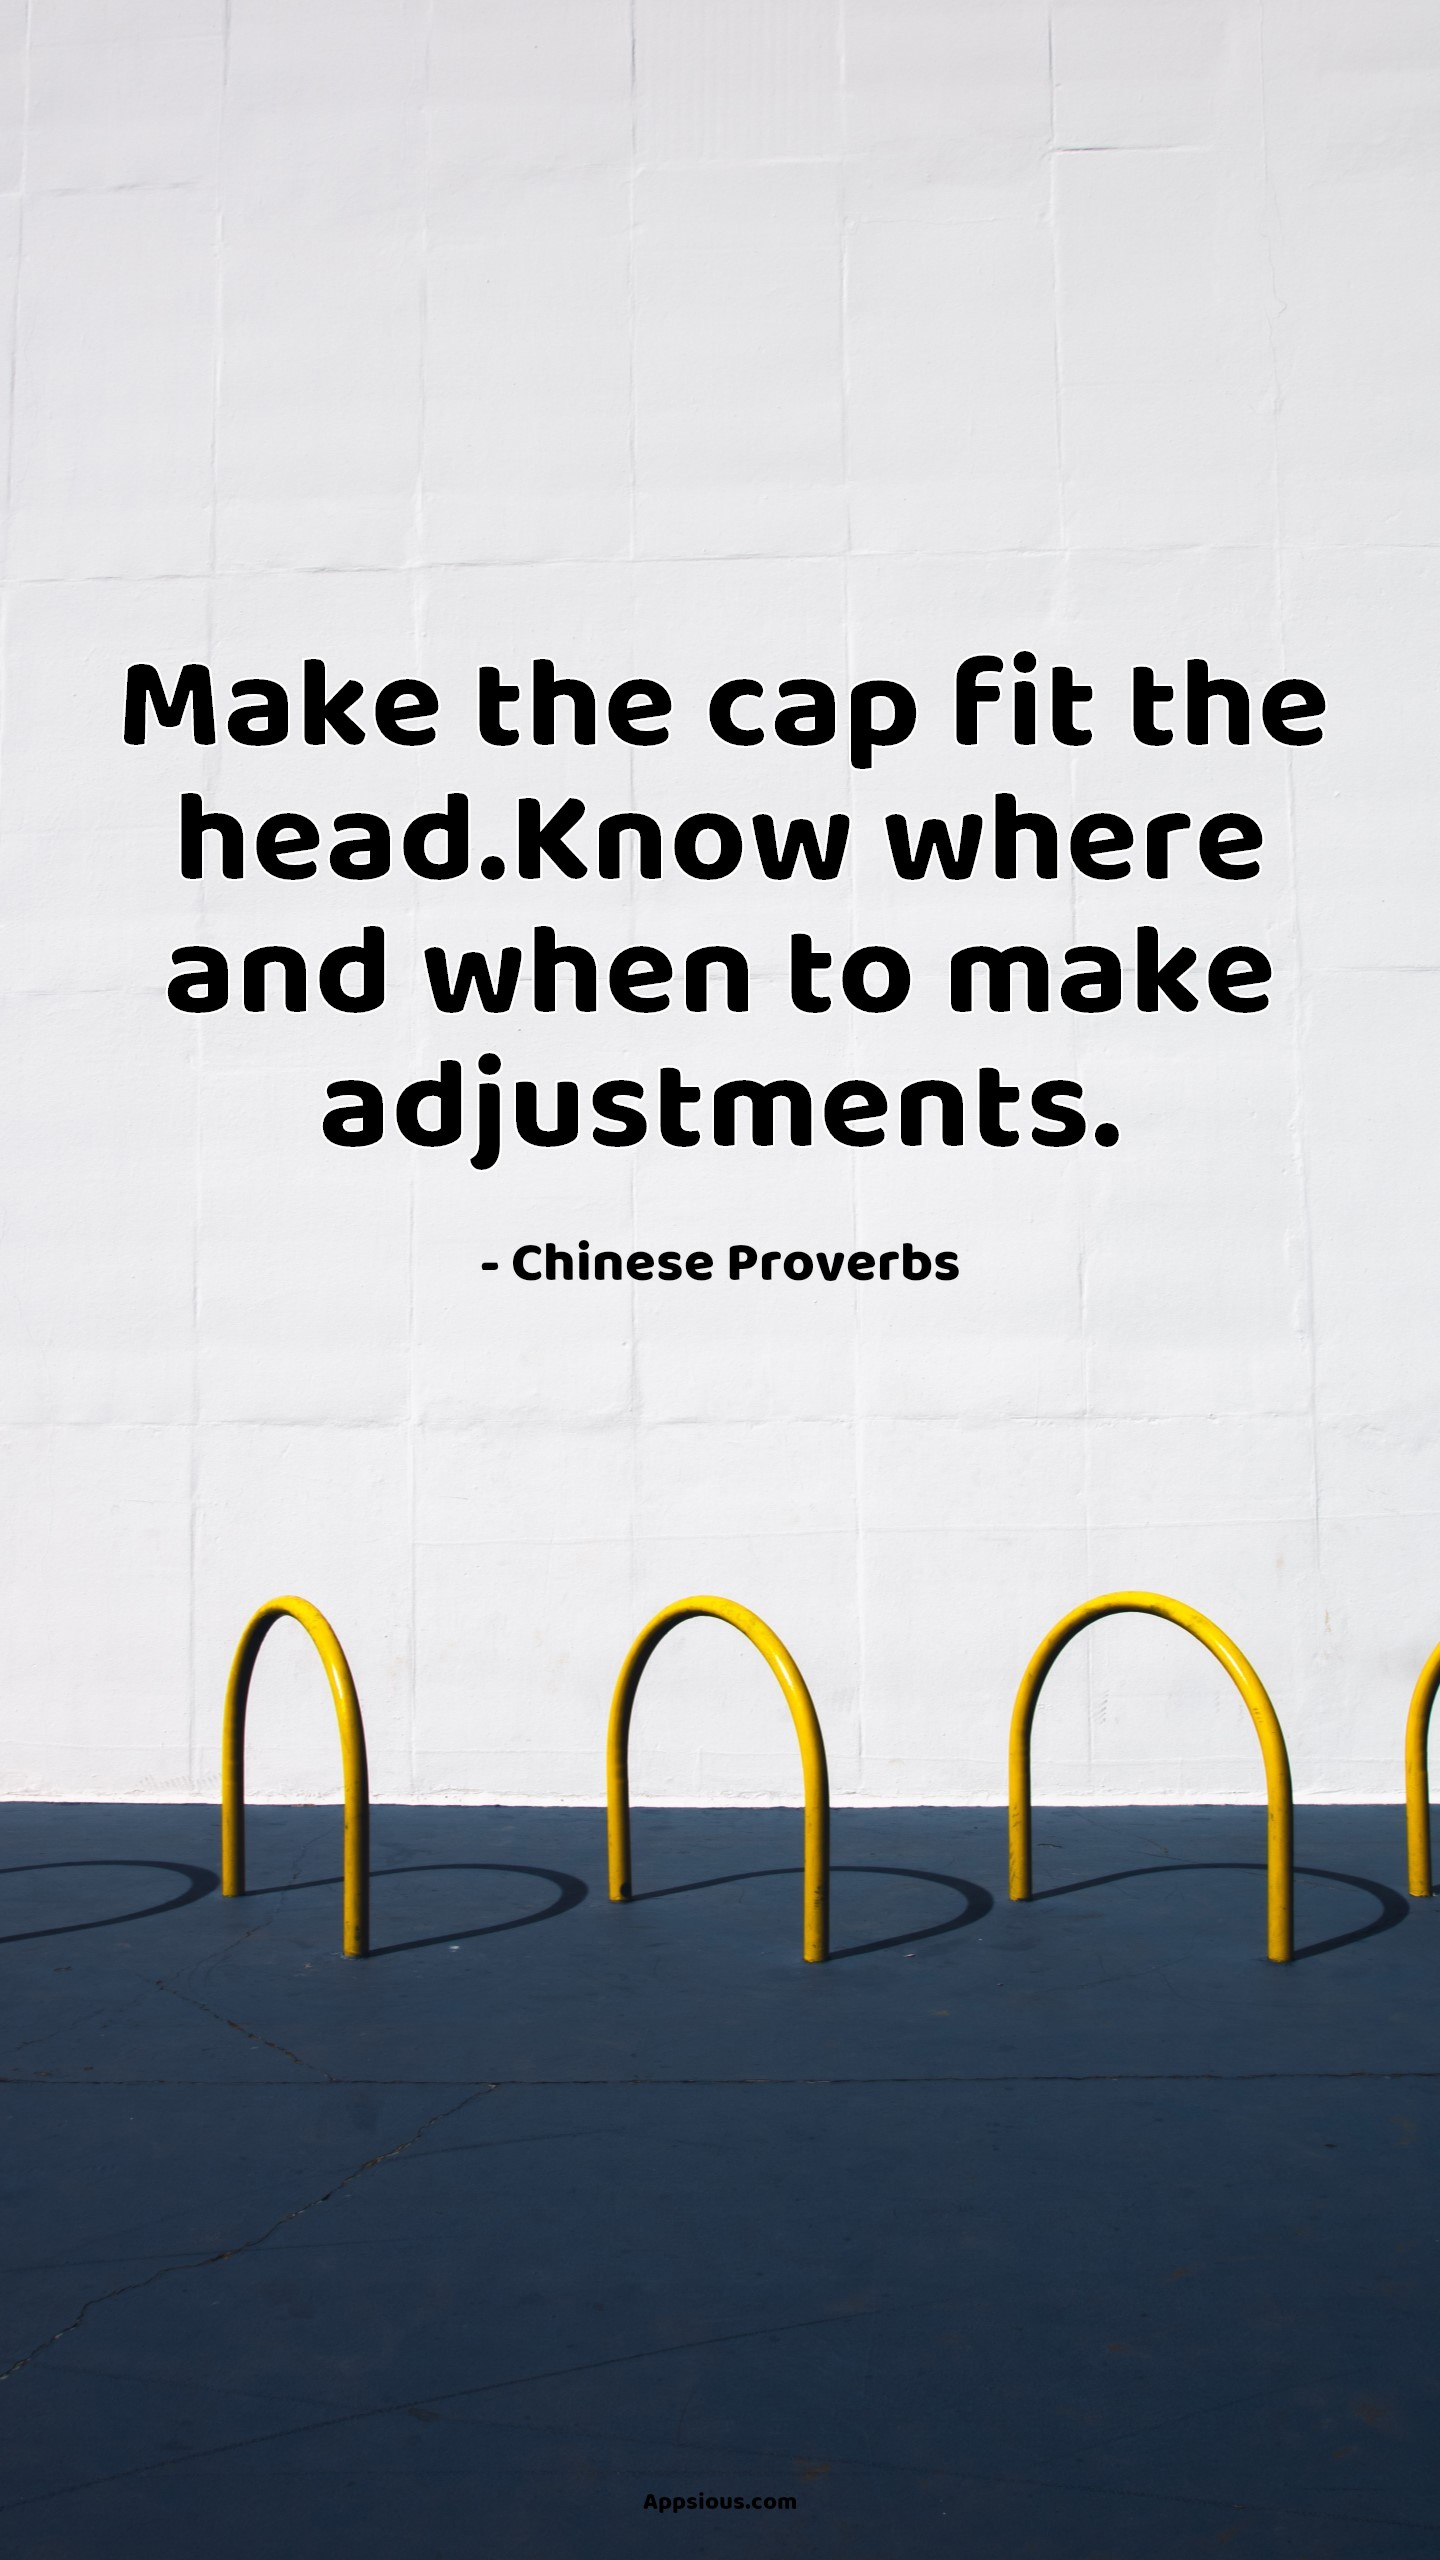 Make the cap fit the head.Know where and when to make adjustments.